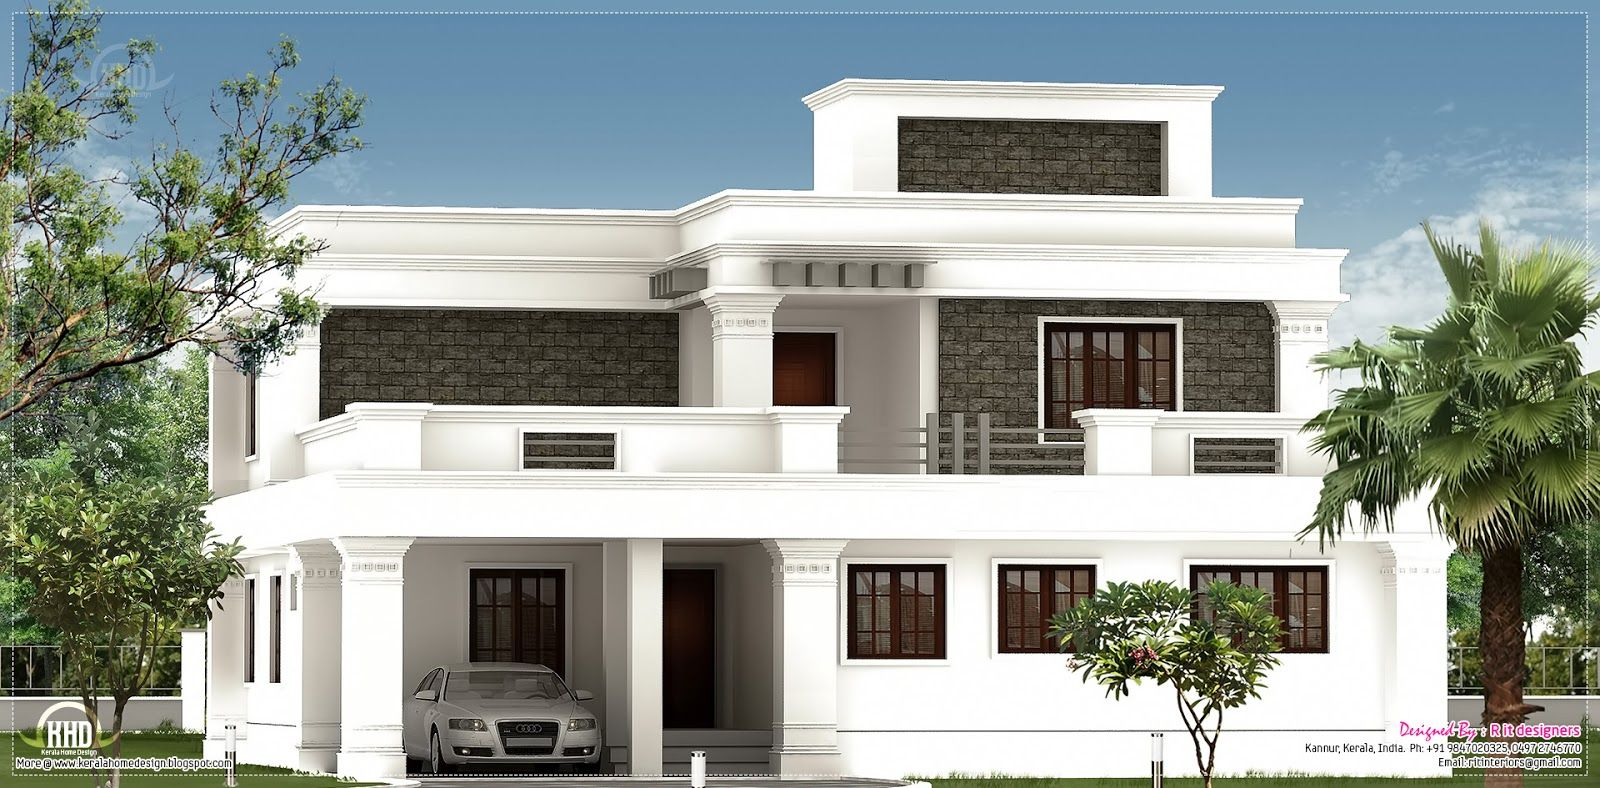 Flat roof homes designs flat roof villa exterior in 2400 Small flat roof house